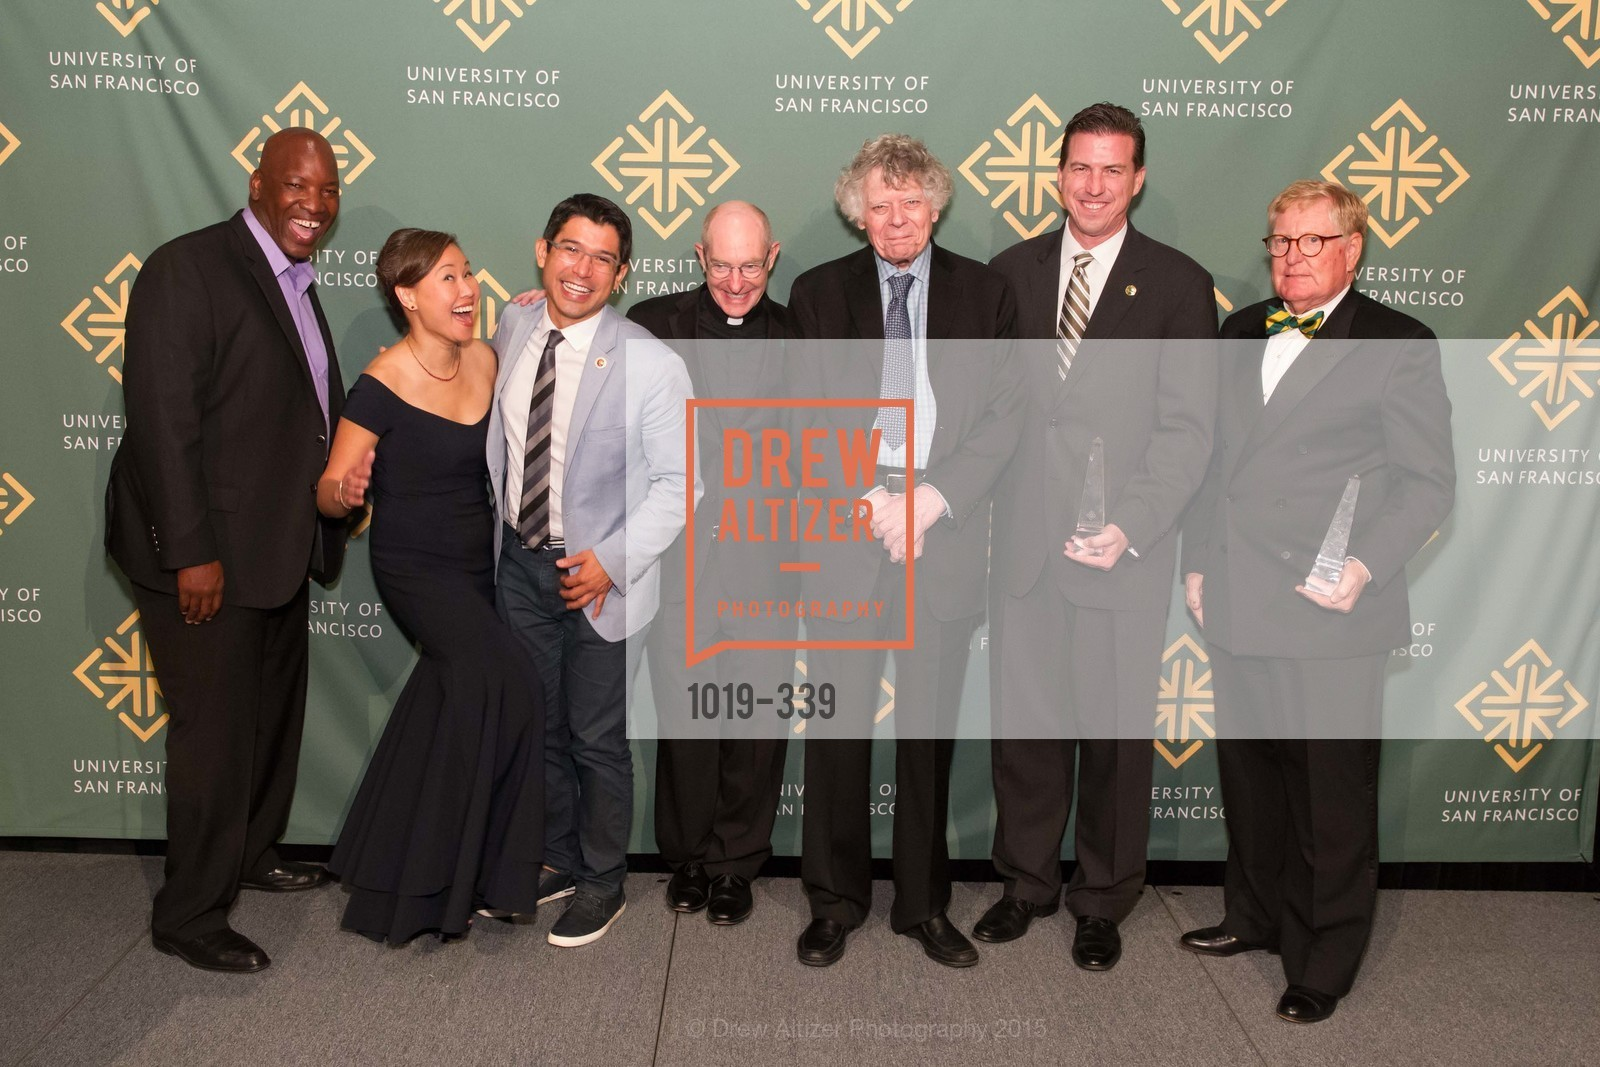 Aaron Horn, Doris Cheng, Carlos Menchaca, Paul Fitzgerald, Gordon Getty, Kevin Mullin, William Hollingsworth, University of San Francisco Alumni Awards Gala 2015, University of San Francisco, October 2nd, 2015,Drew Altizer, Drew Altizer Photography, full-service event agency, private events, San Francisco photographer, photographer California